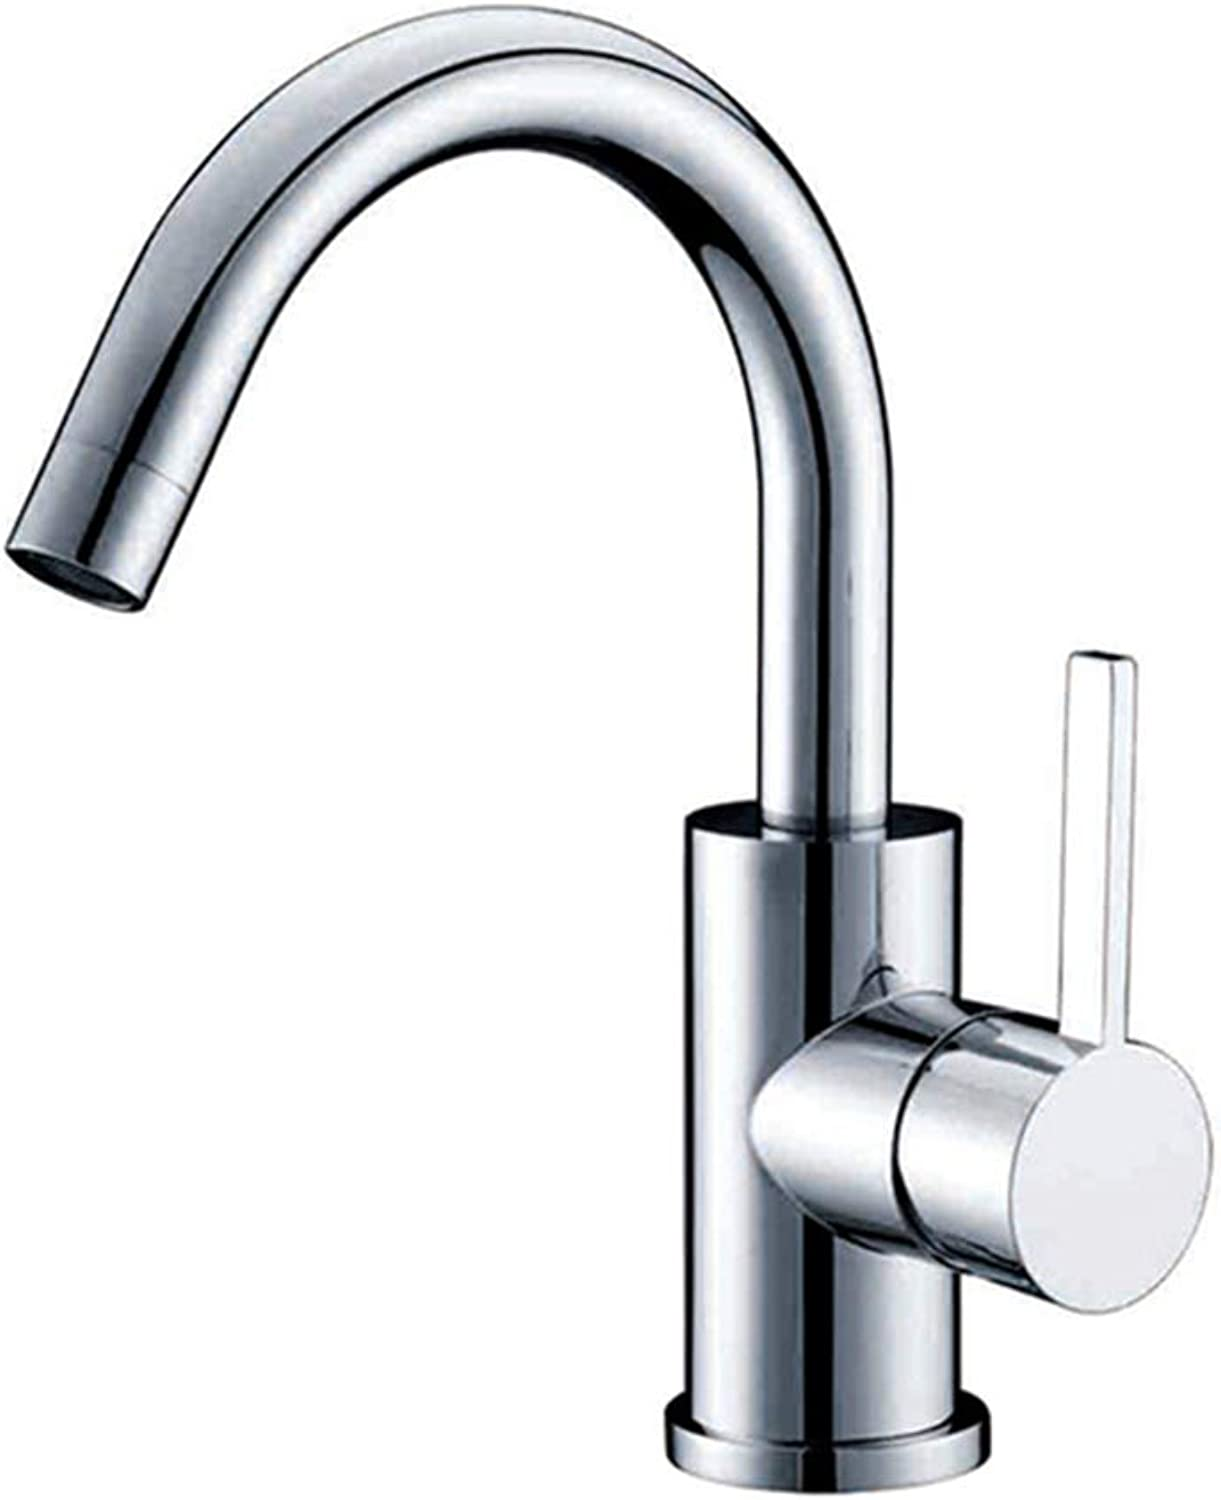 WETRR Kitchen faucet, Single Handle One Hole Standard Spout Contemporary Kitchen Taps, Sink Bathtub Bathroom faucet Sets